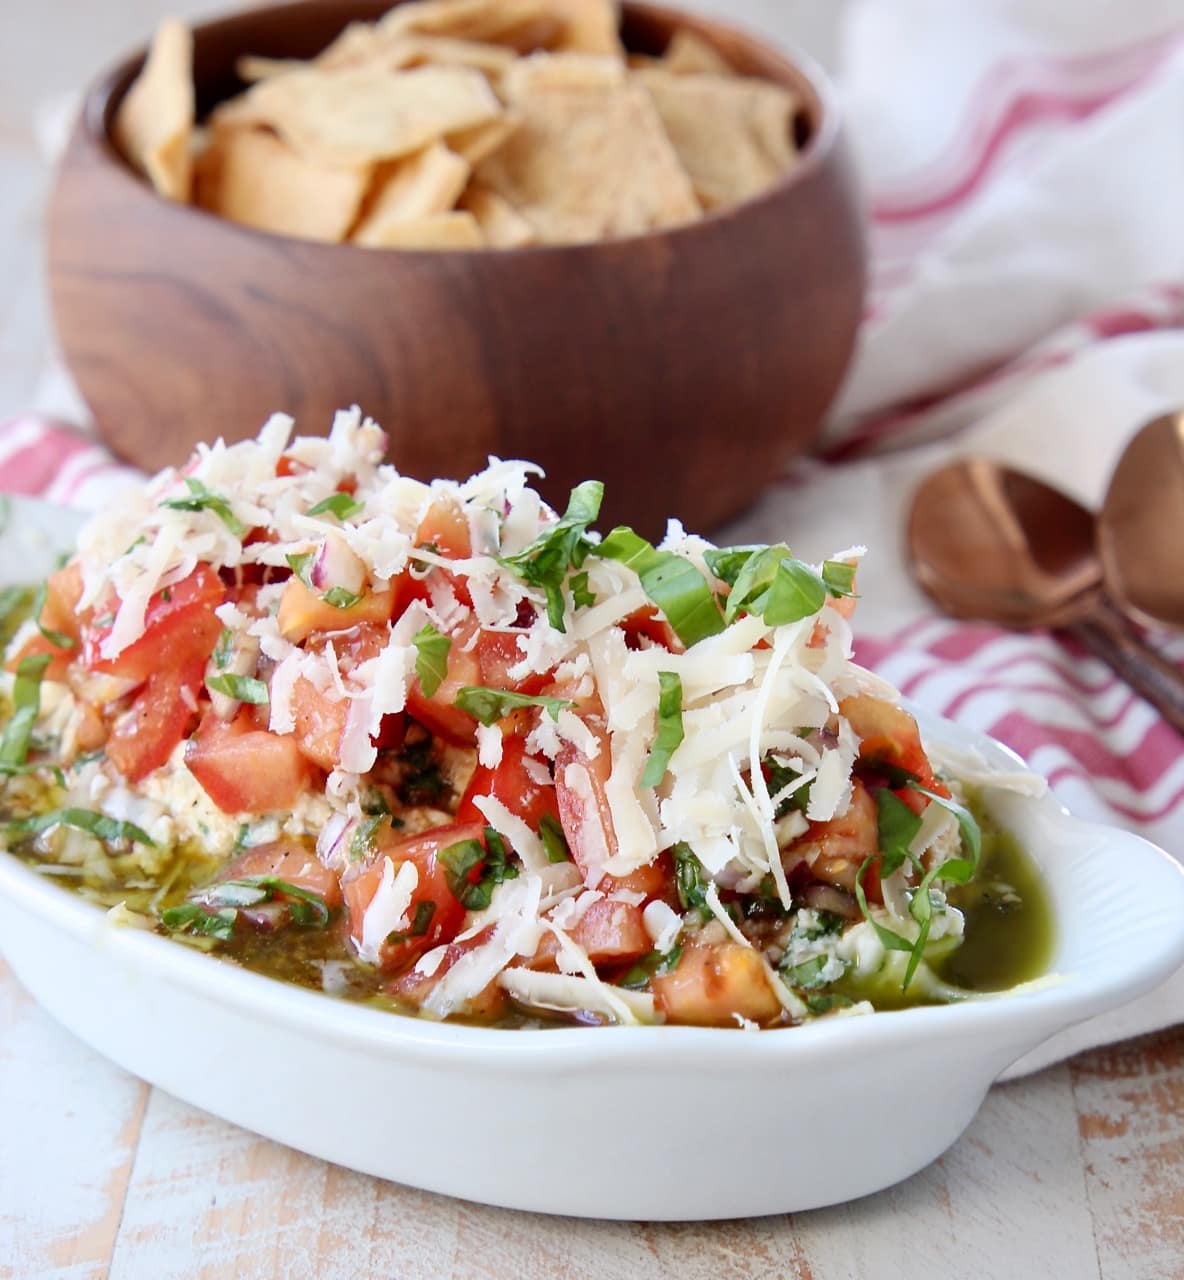 Italian 5 layer dip in white serving bowl with wooden bowl of pita chips behind it and 2 copper spoons next to it